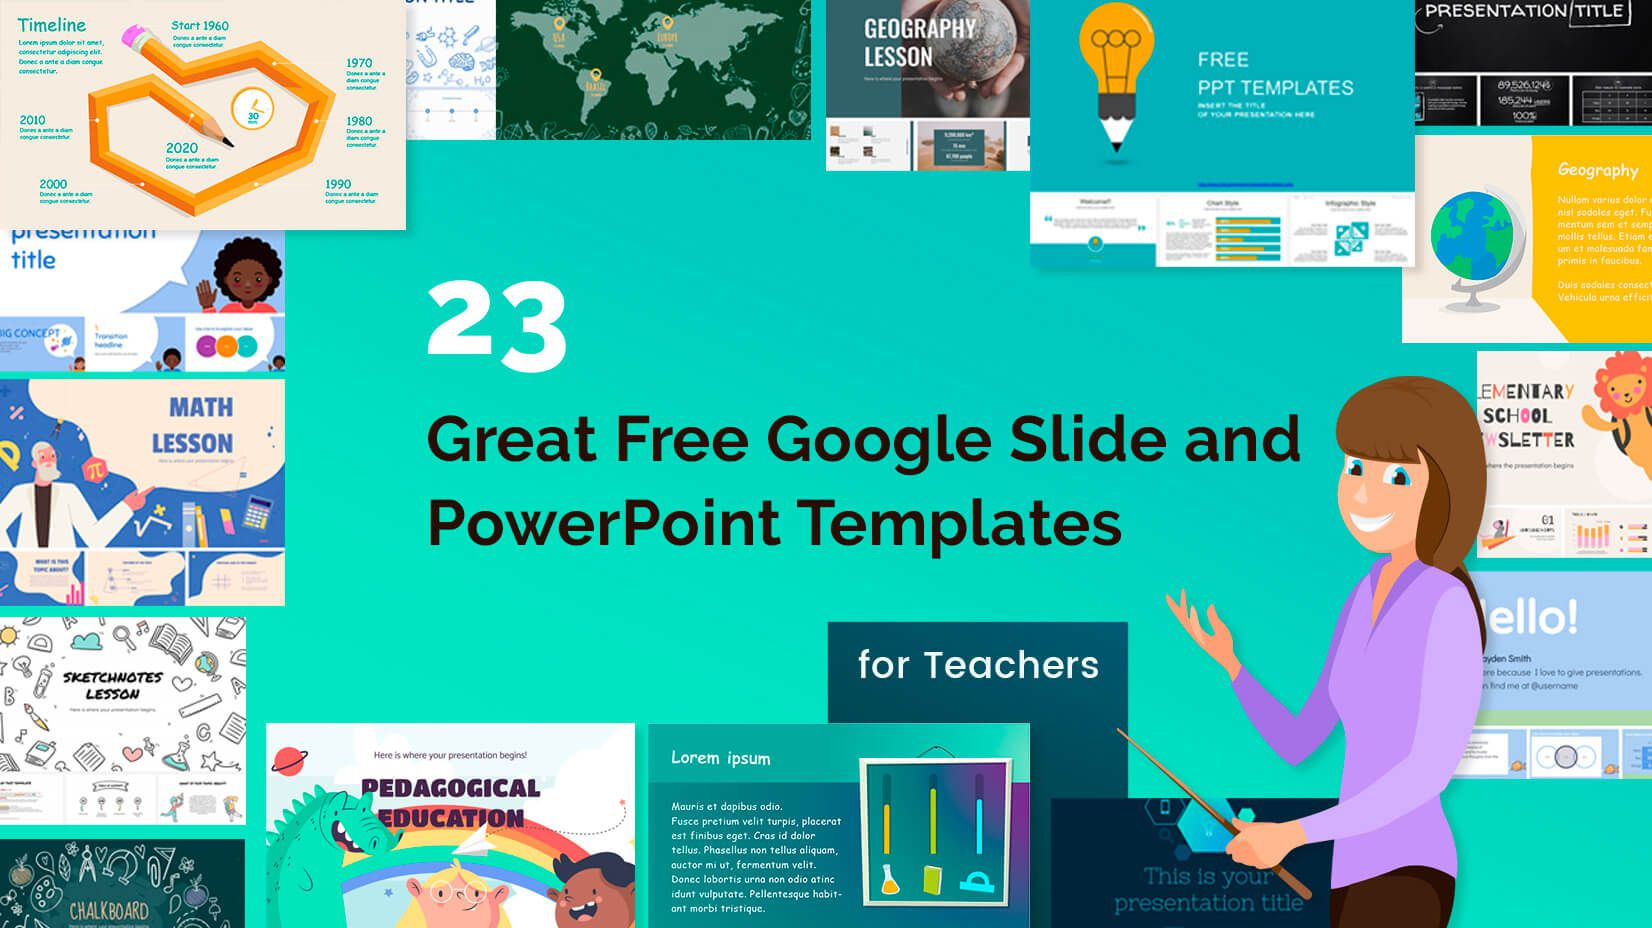 004 Striking Project Management Powerpoint Template Free Download Image  Sqert DashboardFull